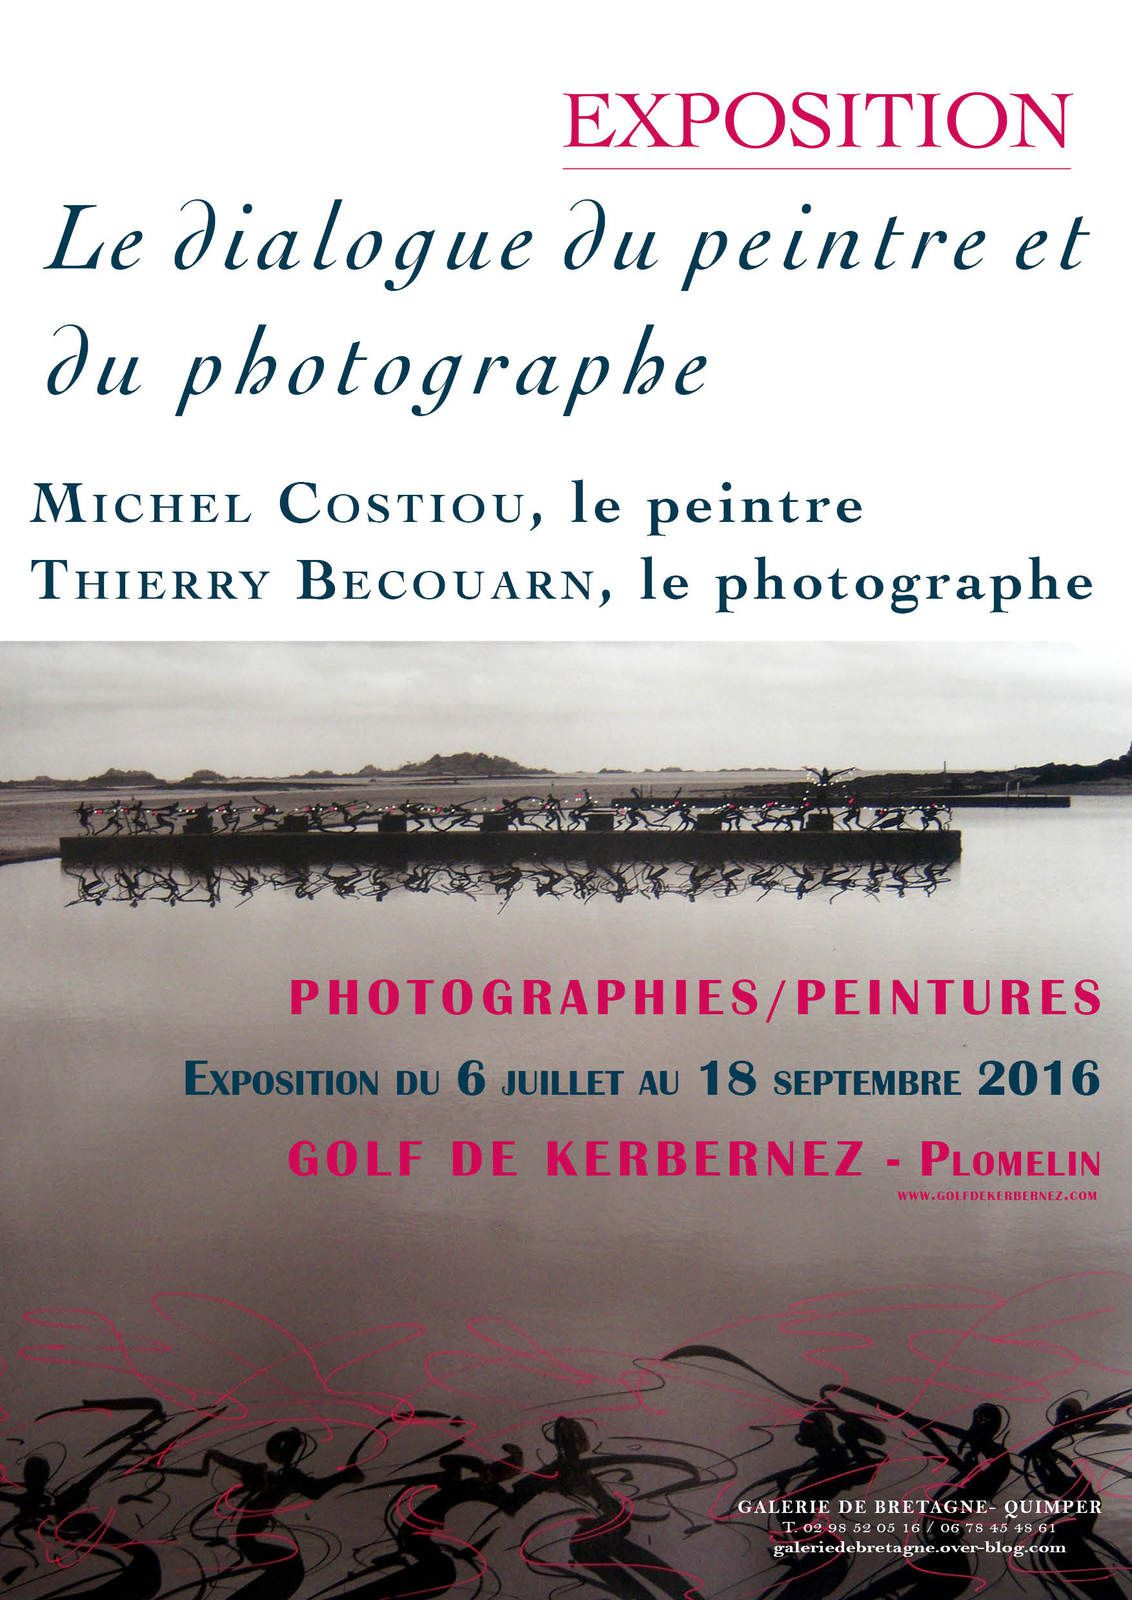 le dialogue du peintre et du photographe #Plomelin